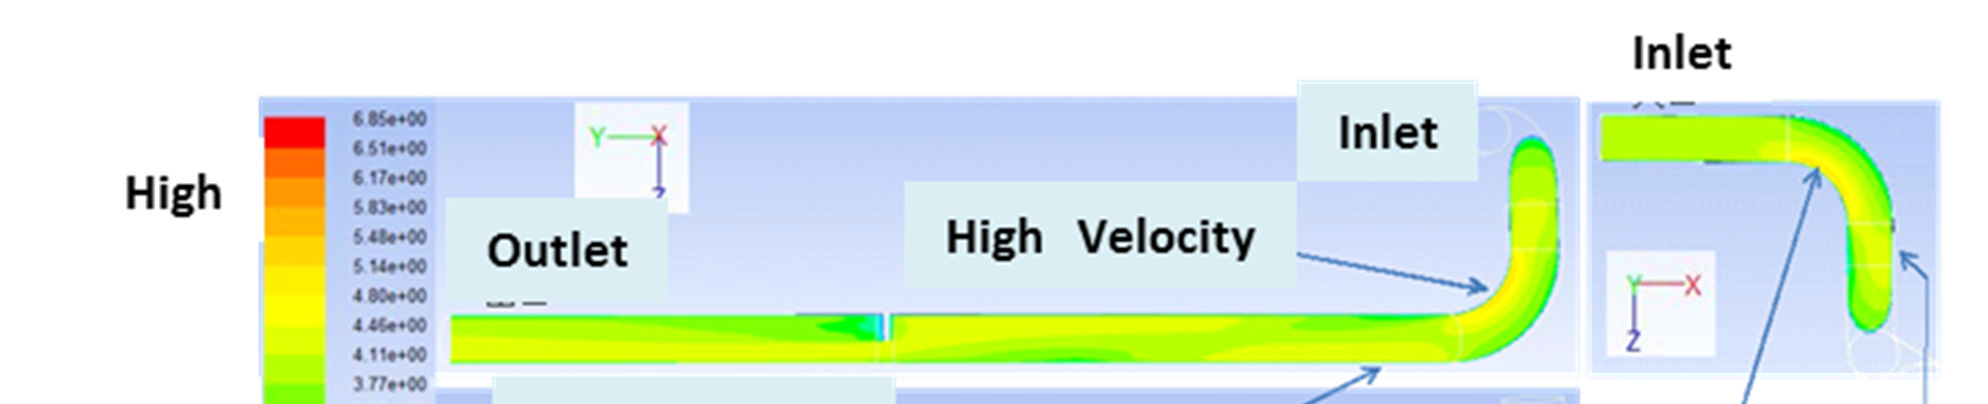 The average velocity of the boiler feedwater was 4.